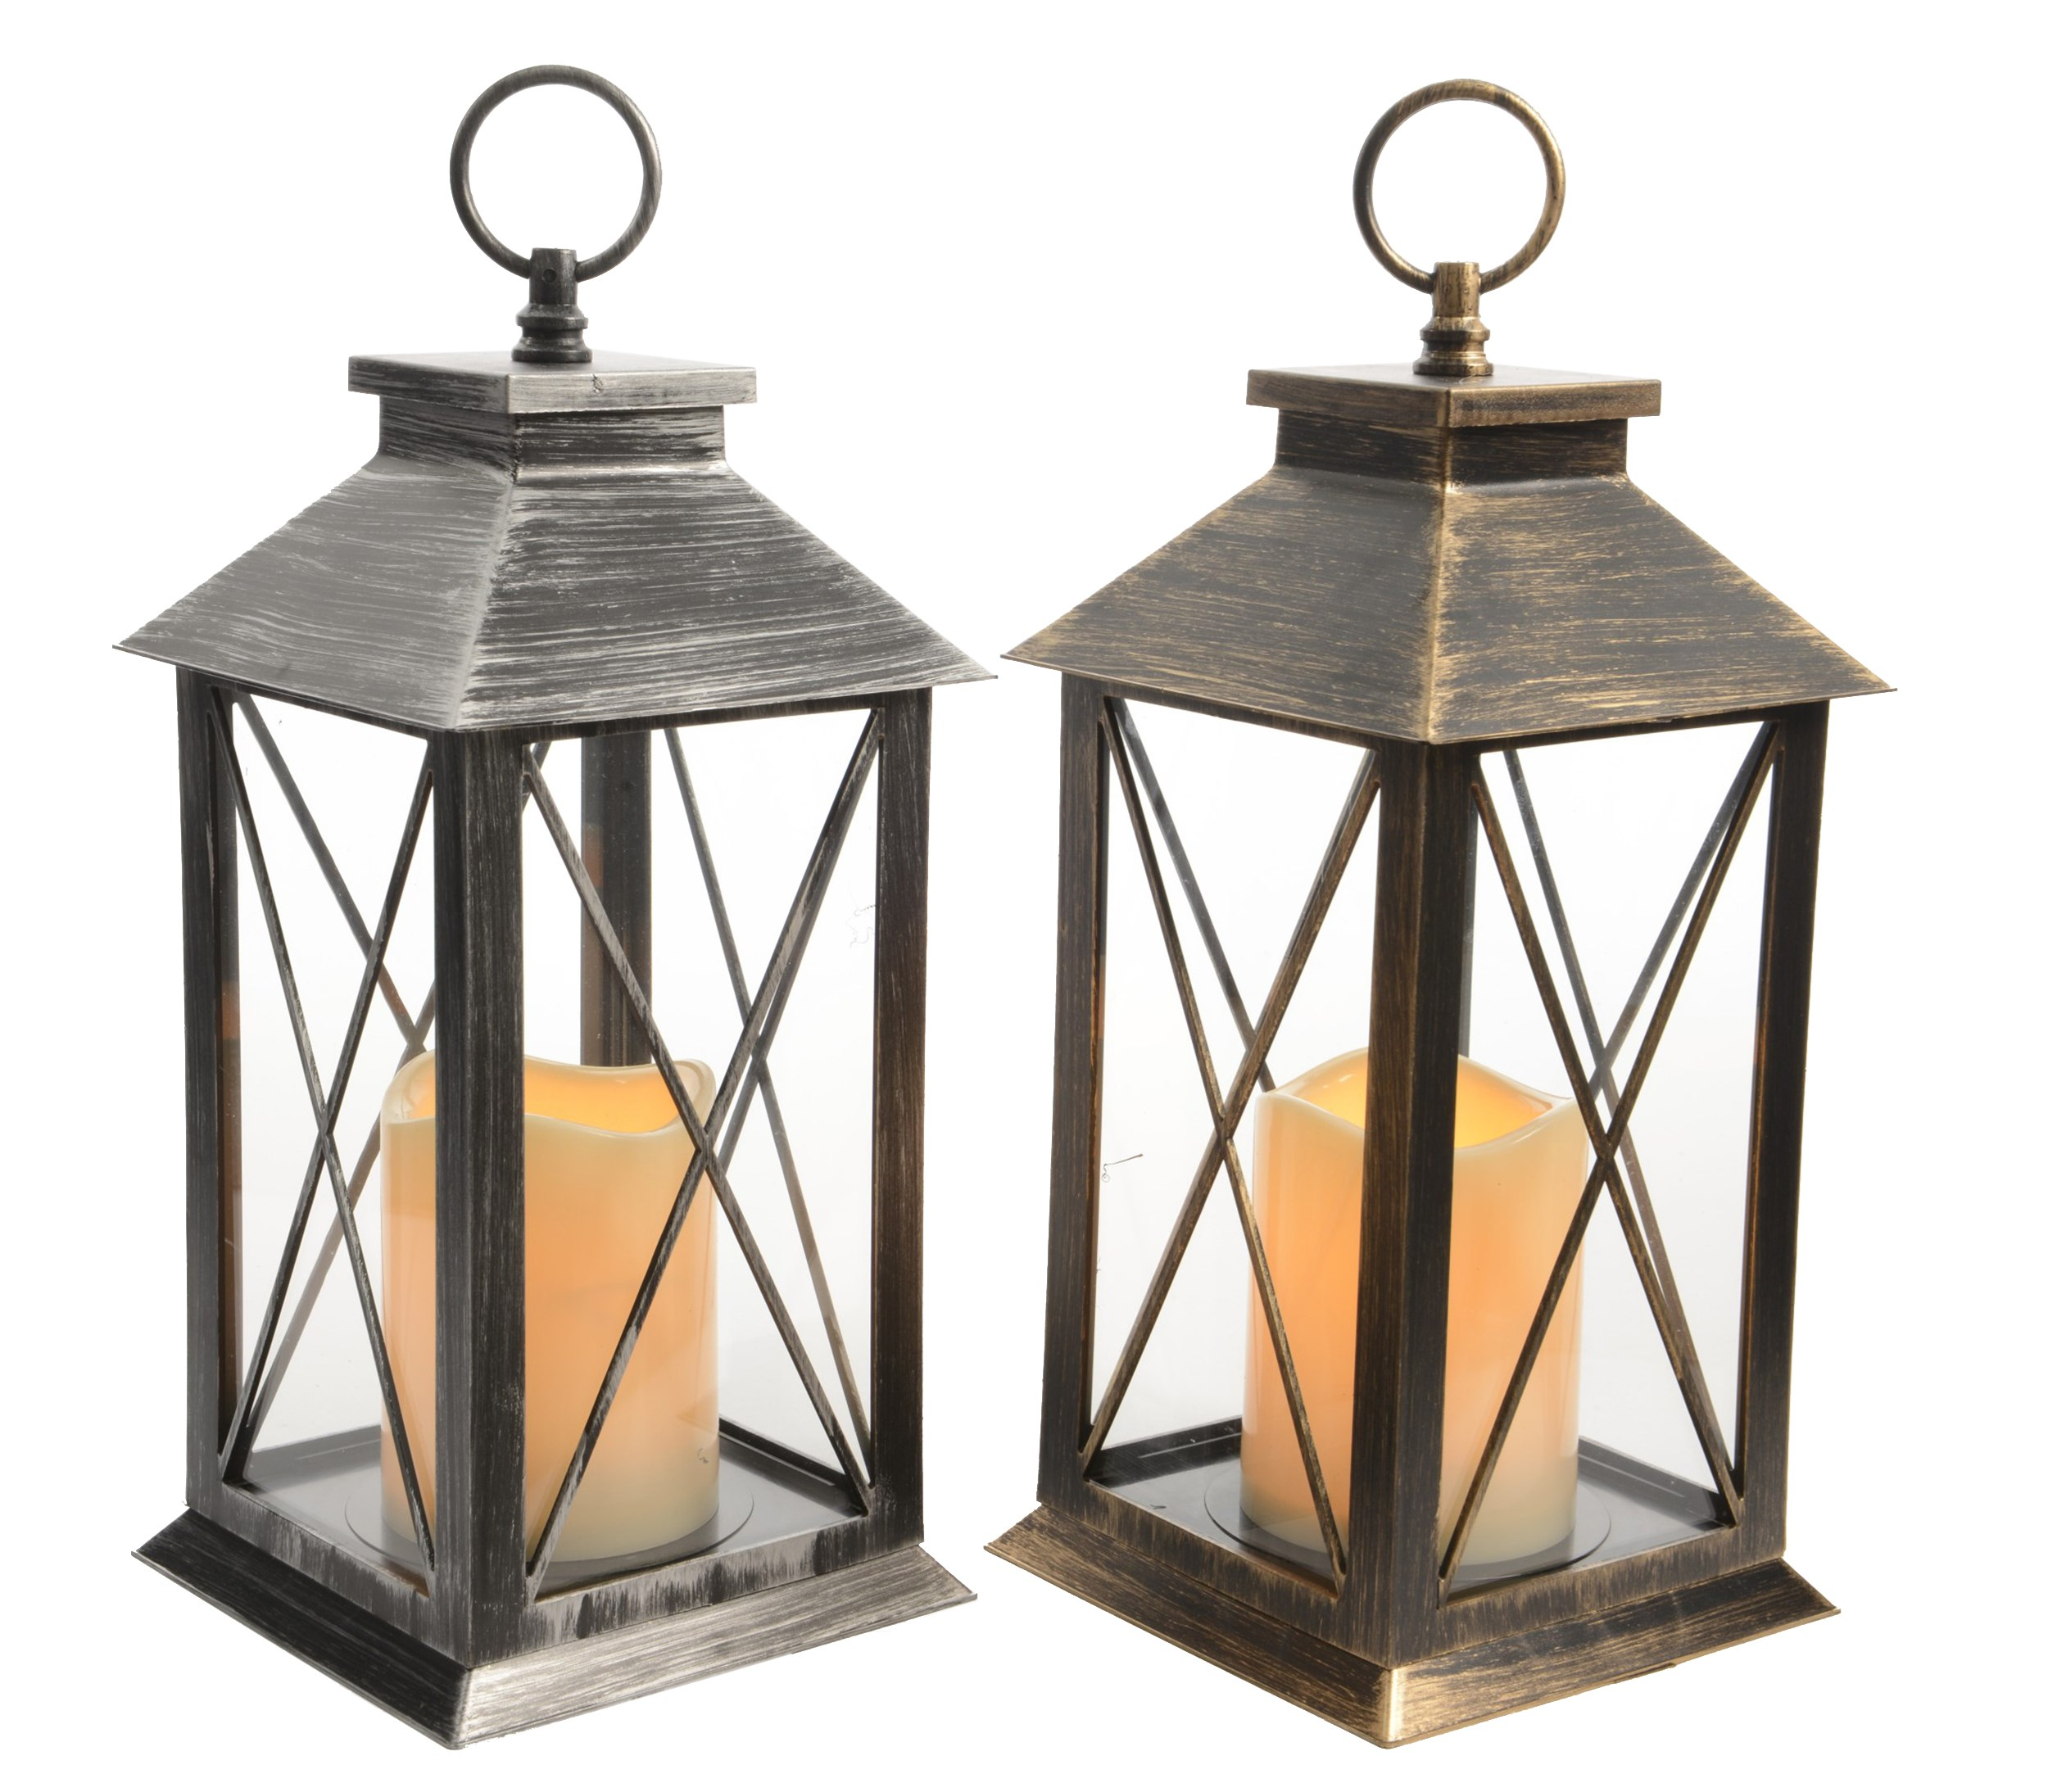 Kaemingk  Traditional Lantern with LED Candle & Timer - Antique Bronze